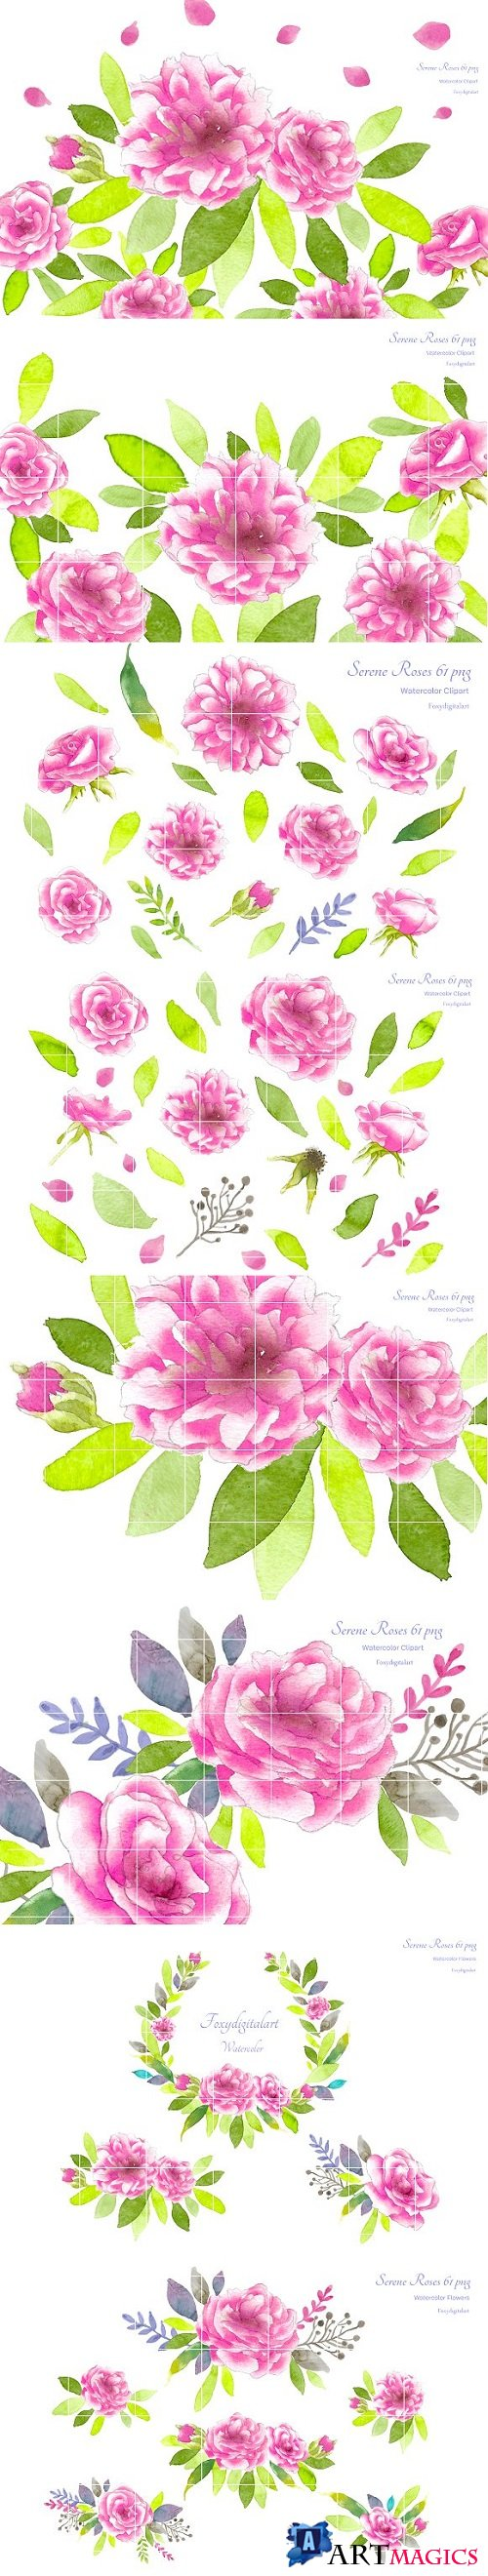 Pink Roses Watercolor Flowers CL59 2089438